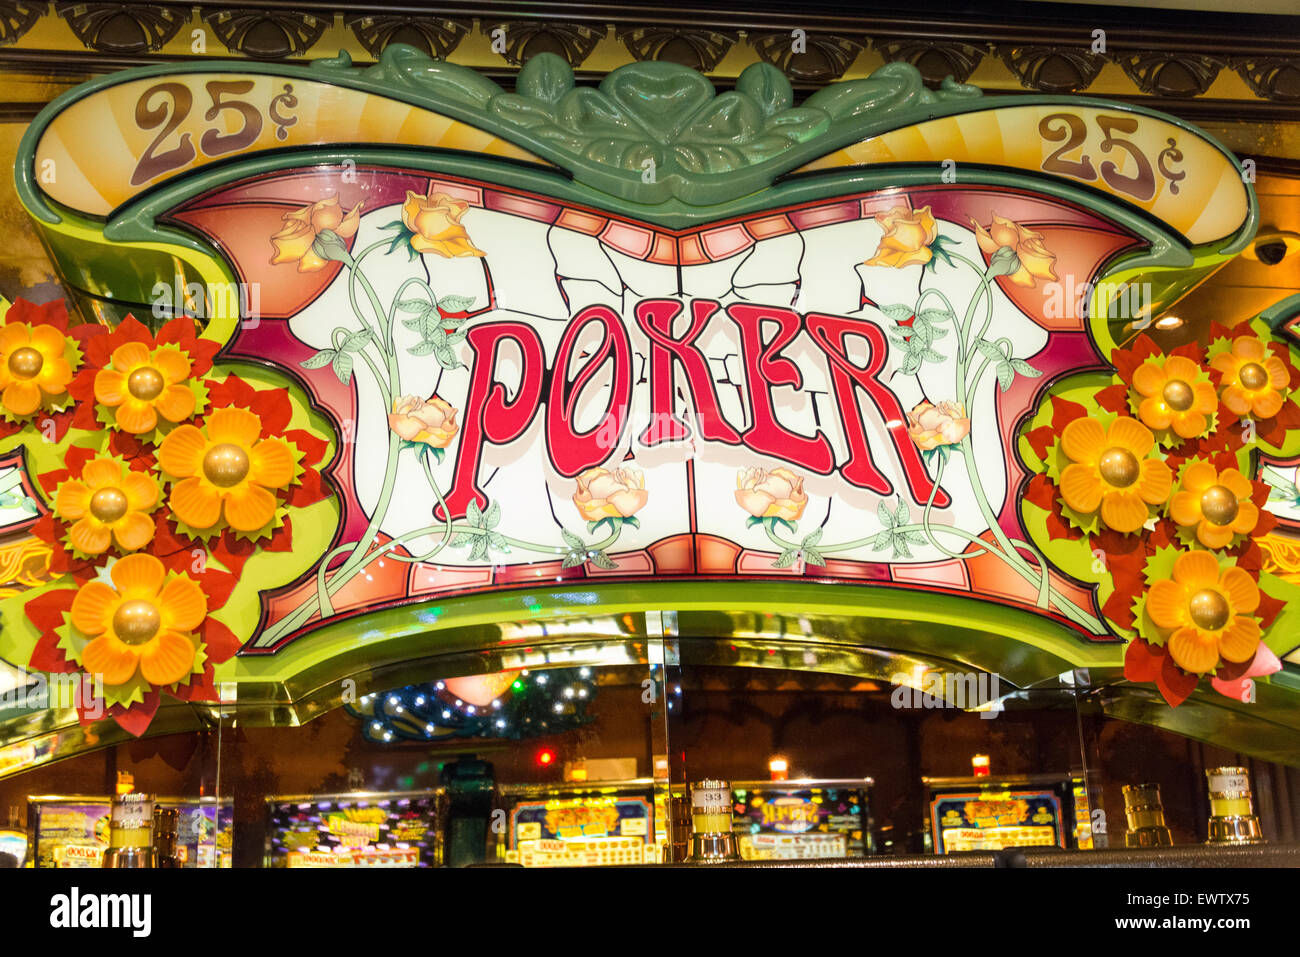 Poker sign in Casino on Royal Caribbean 'Brilliance of the Seas' cruise ship, Baltic Sea, Northern Europe - Stock Image